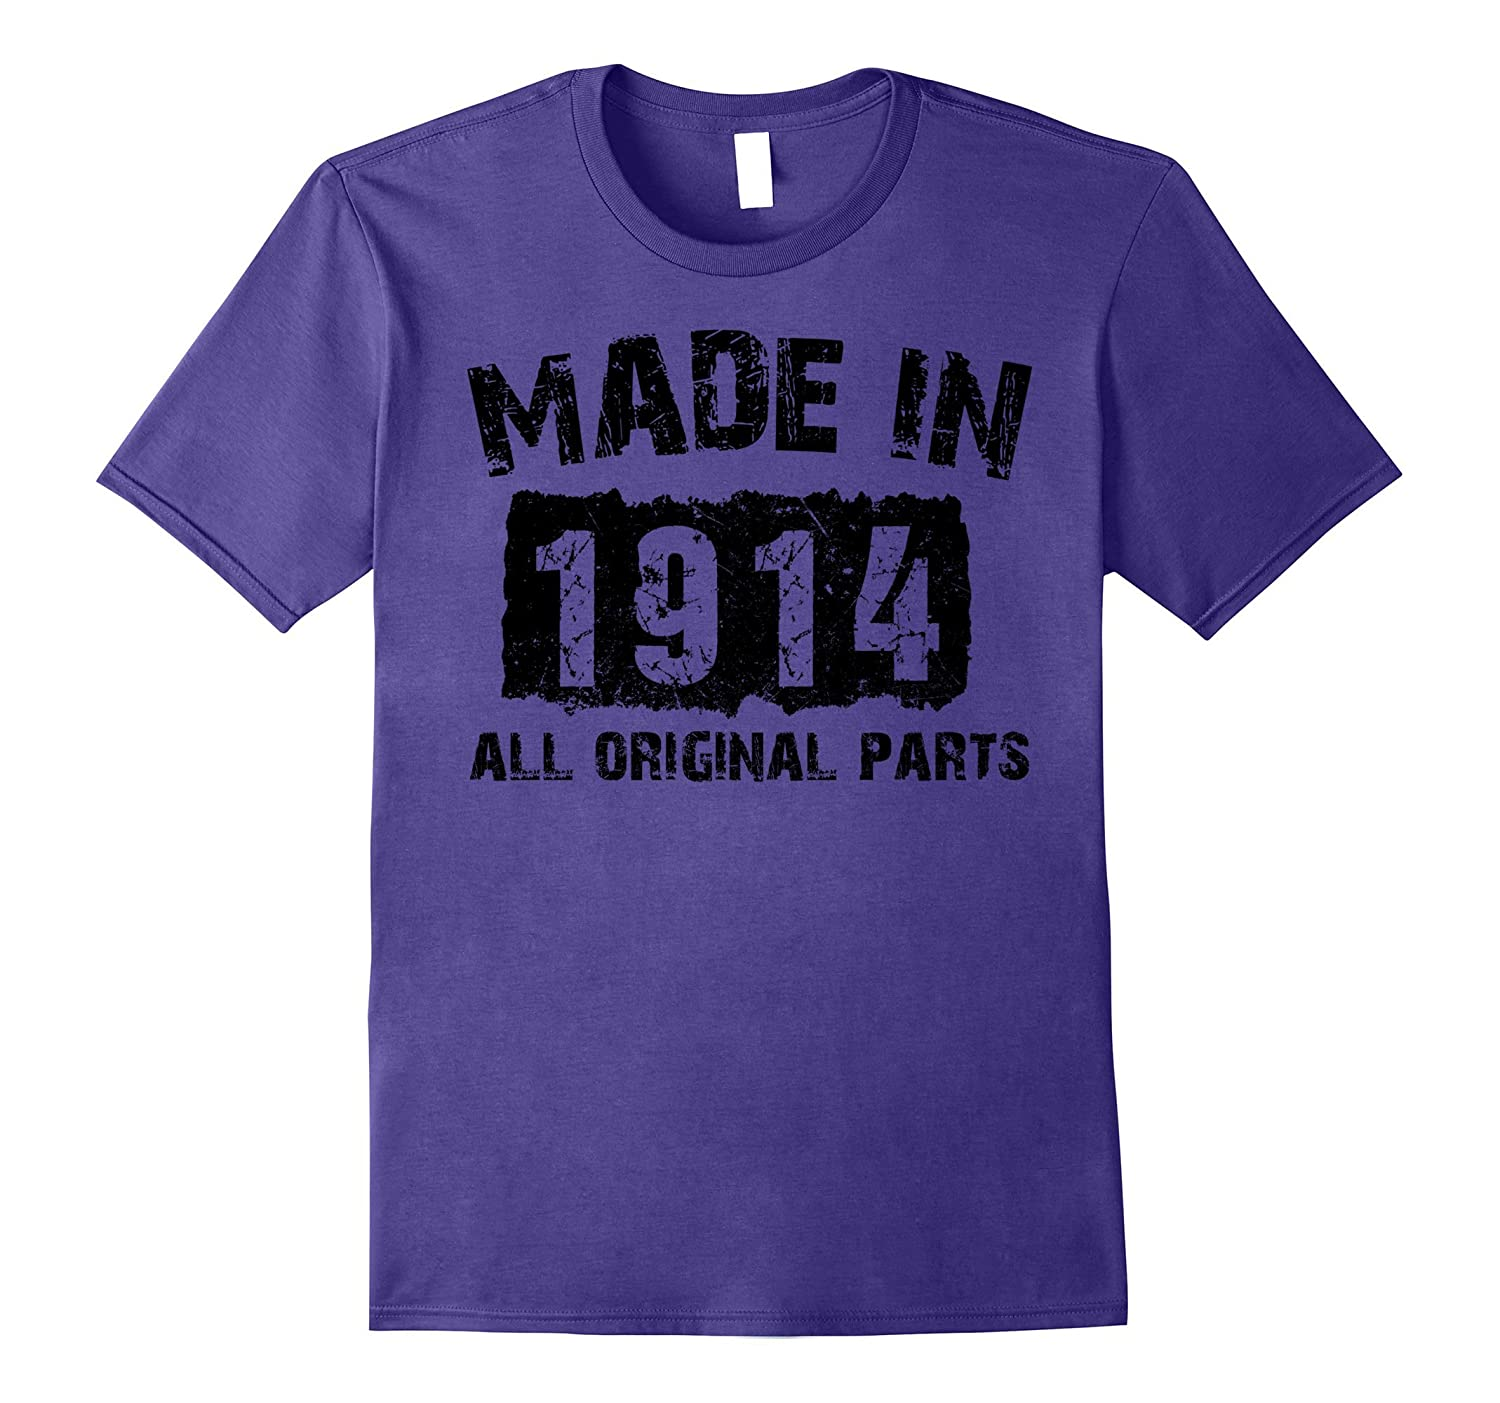 103th Birthday 103 Years Old 1914 T-Shirt-Vaci